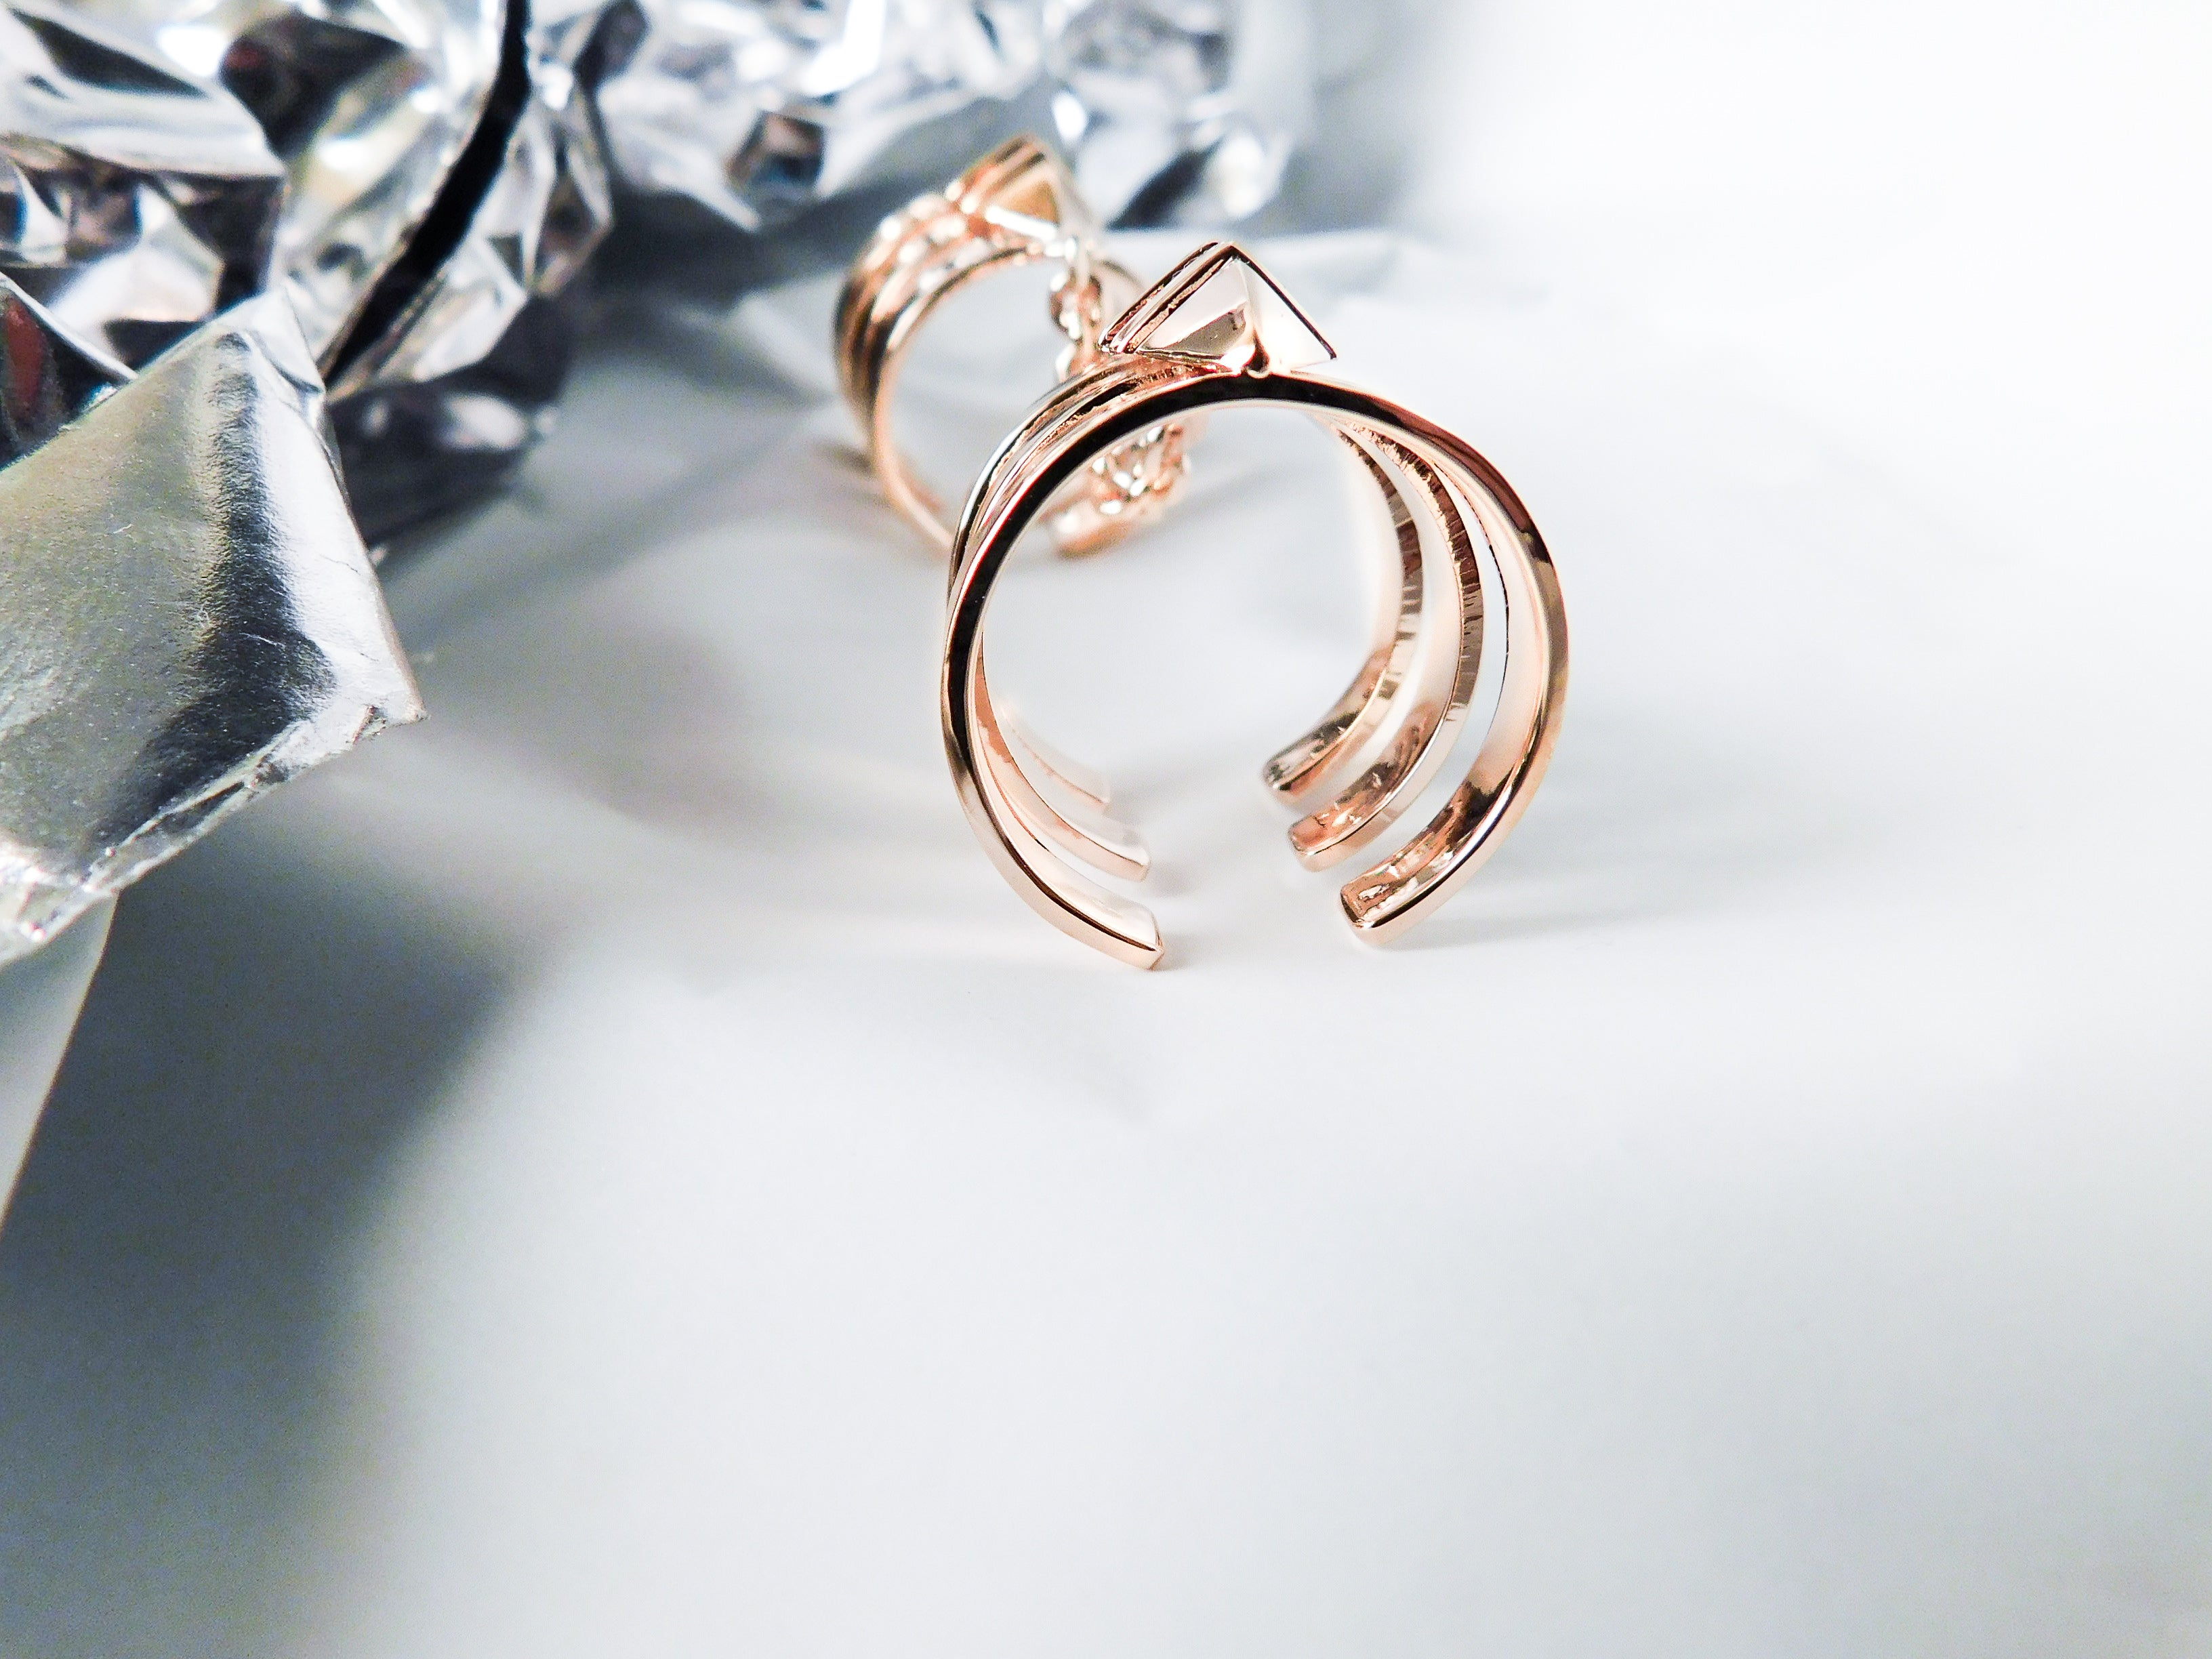 rosegold recycled jewellery statement classic accessory rings